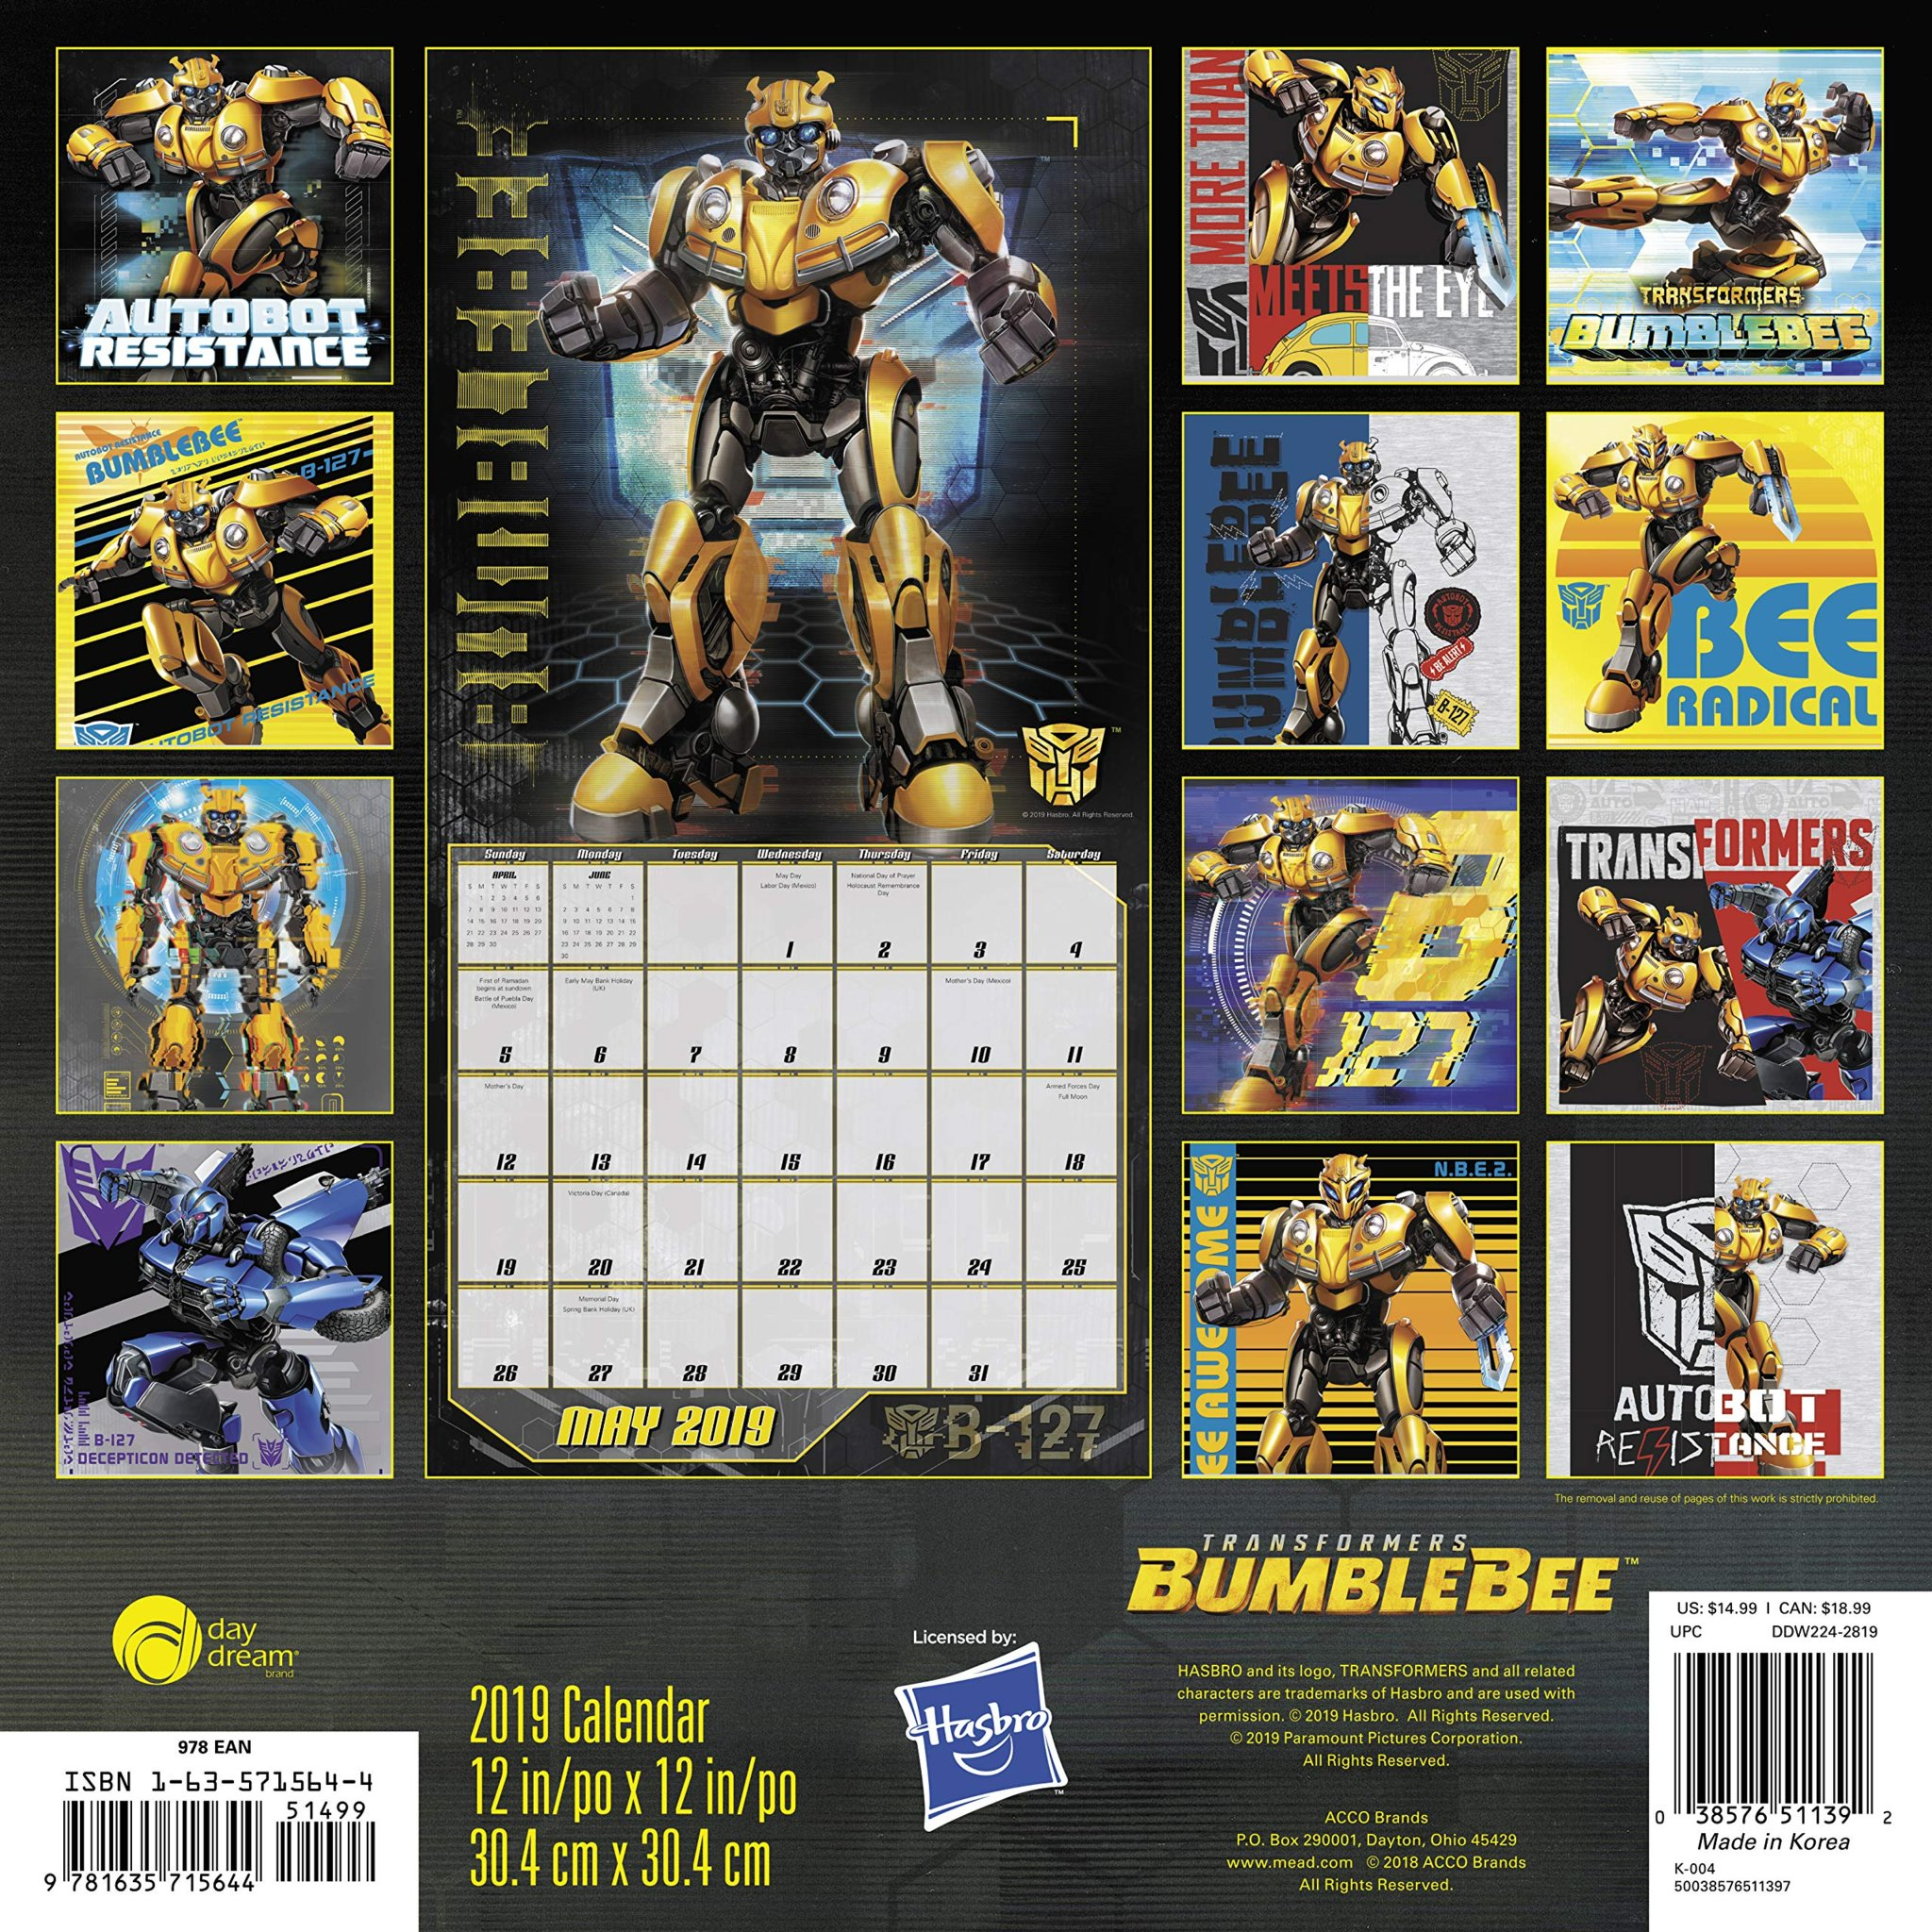 Brand new transformers bumblebee promo art from 2019 wall calendar transformers news tfw2005 - Images of bumblebee from transformers ...